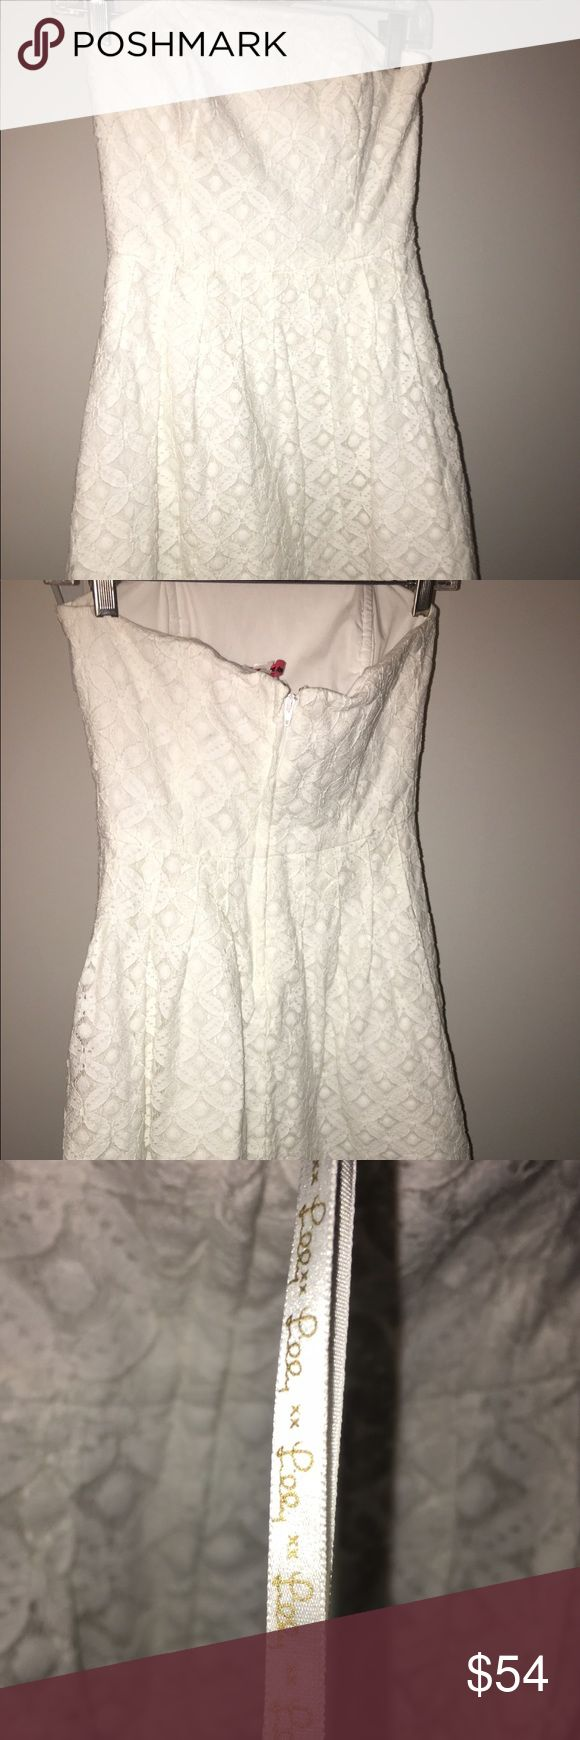 White Lilly Pulitzer dress Lilly Pulitzer brand dress- inside tag has been removed. Professionally dry cleaned Size:2, short dress Lilly Pulitzer Dresses Mini